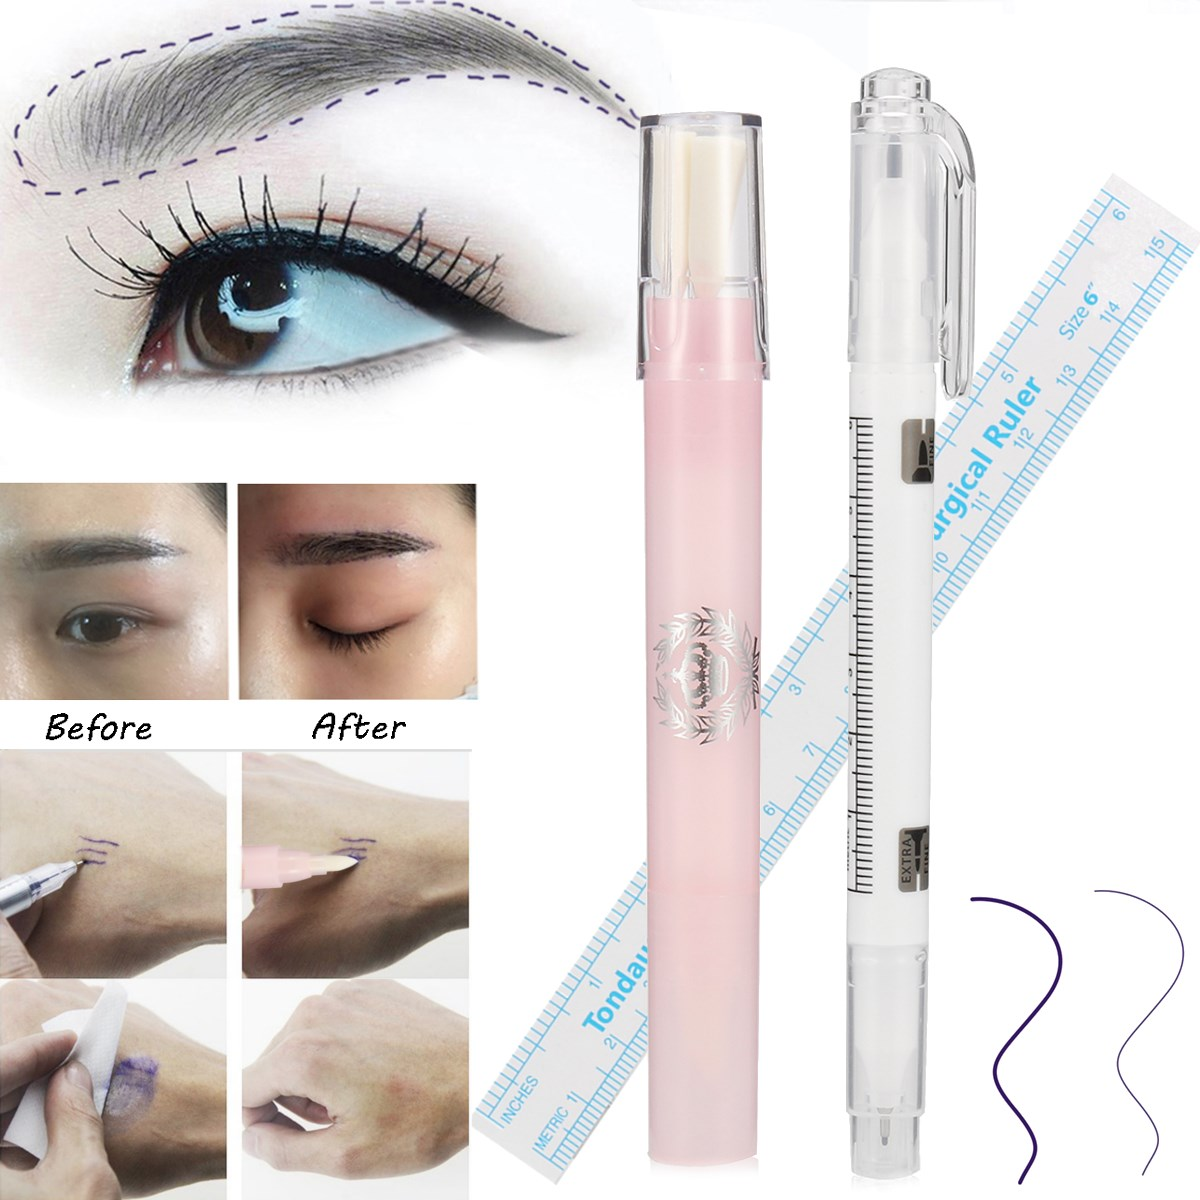 3pcs Microblading Surgical Eyebrow Marker Pen With Measure Ruler +Magic Eraser Remover Brush Tattoo Scribe Piercing Skin Tool